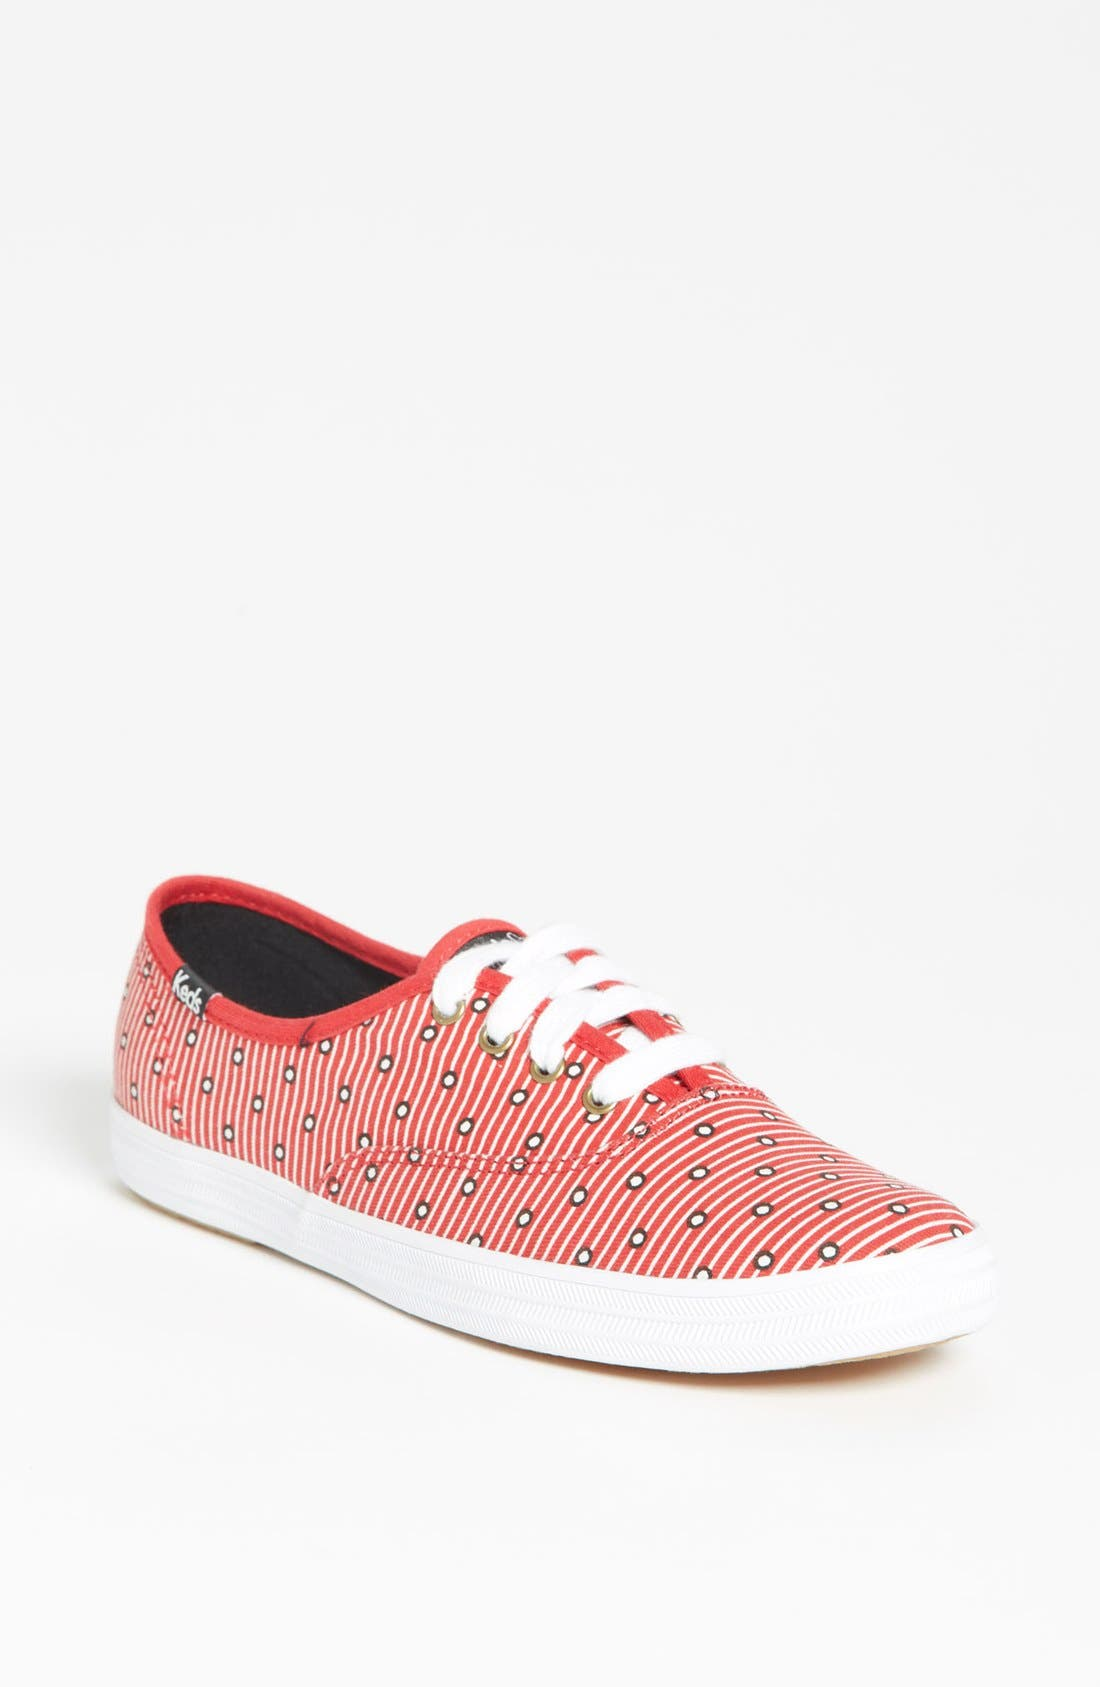 Alternate Image 1 Selected - Keds® Taylor Swift 'Dot' Champion Sneaker (Limited Edition) (Nordstrom Exclusive)